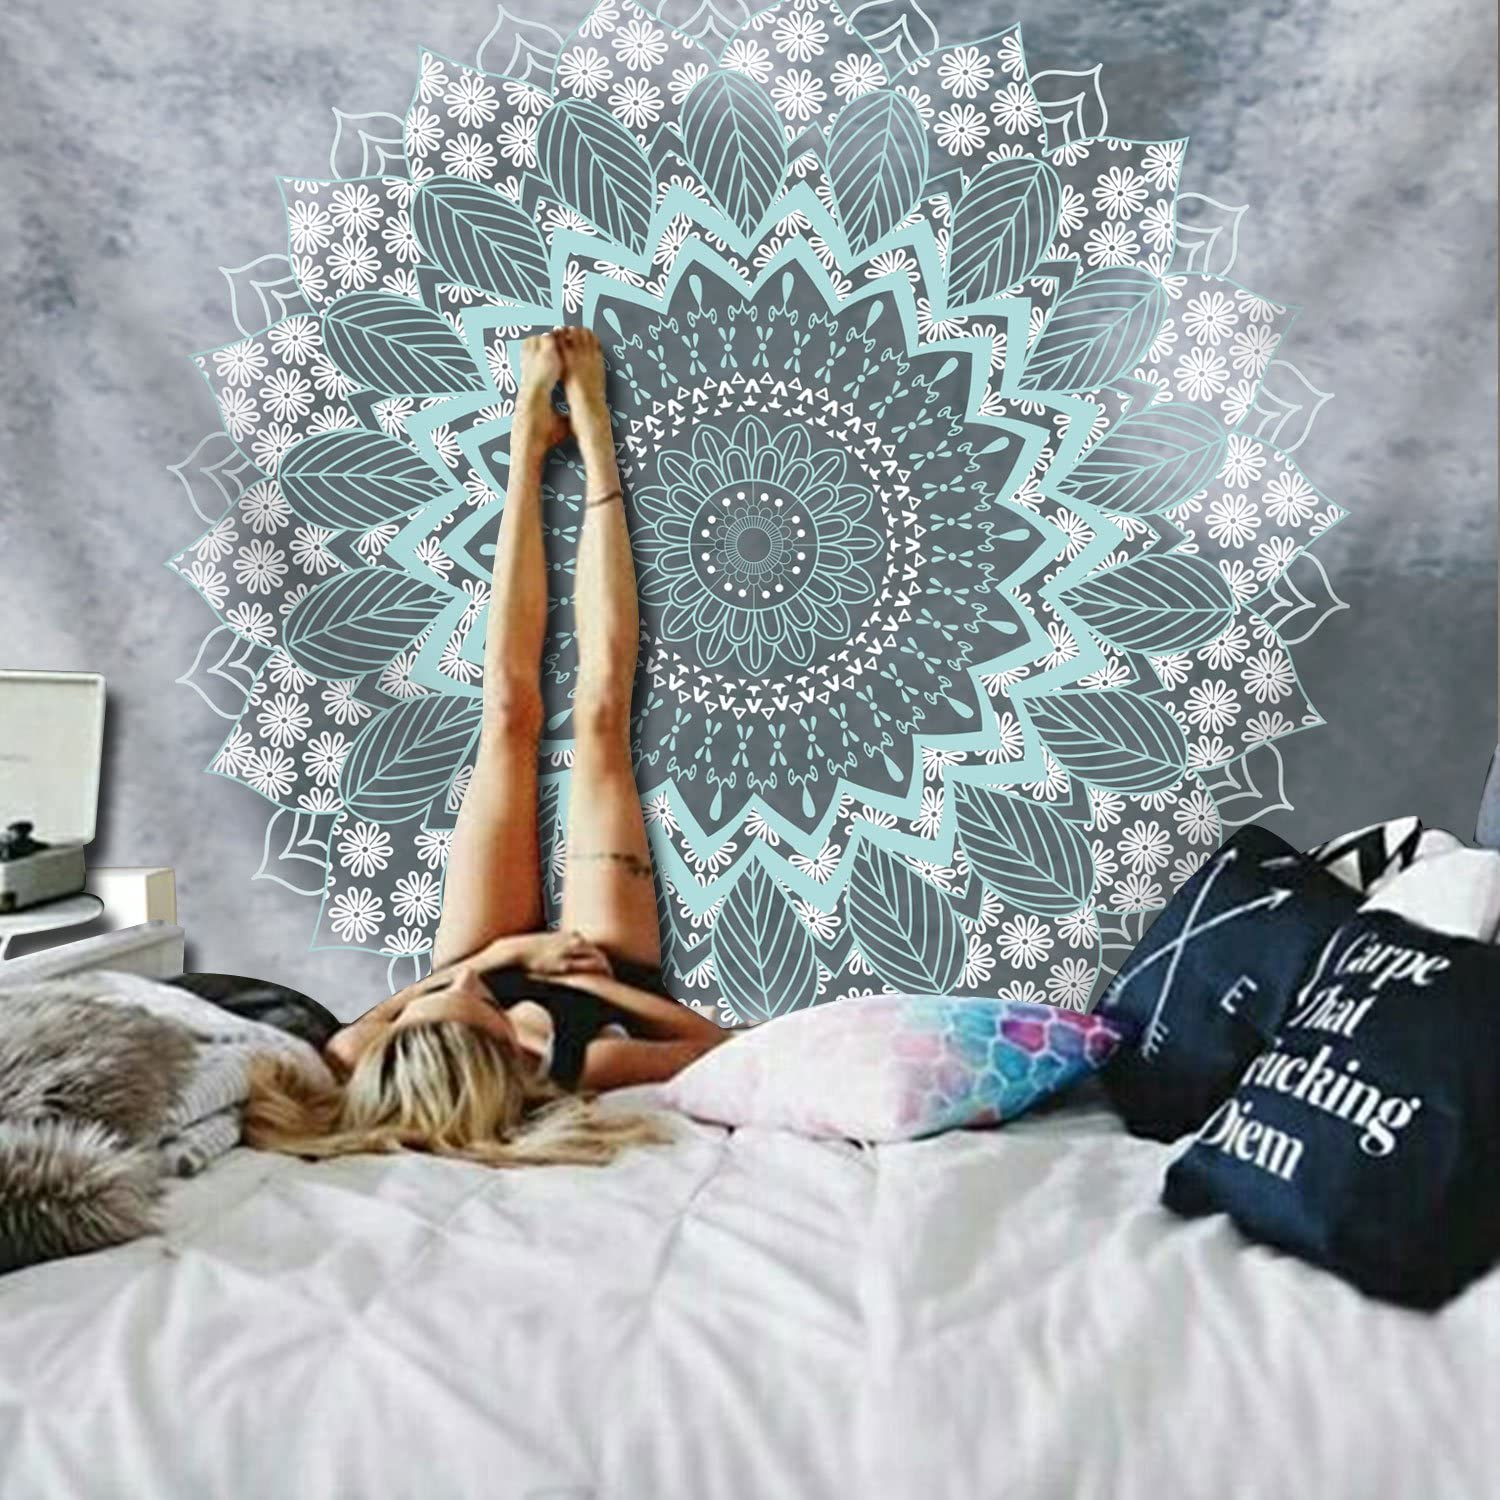 51.2/—59.1 inches, Mandala Tapestry Tapestry Mandala Hippie Bohemian Tapestries Wall Hanging Flower Psychedelic Tapestry Wall Hanging Indian Dorm Decor for Living Room Bedroom